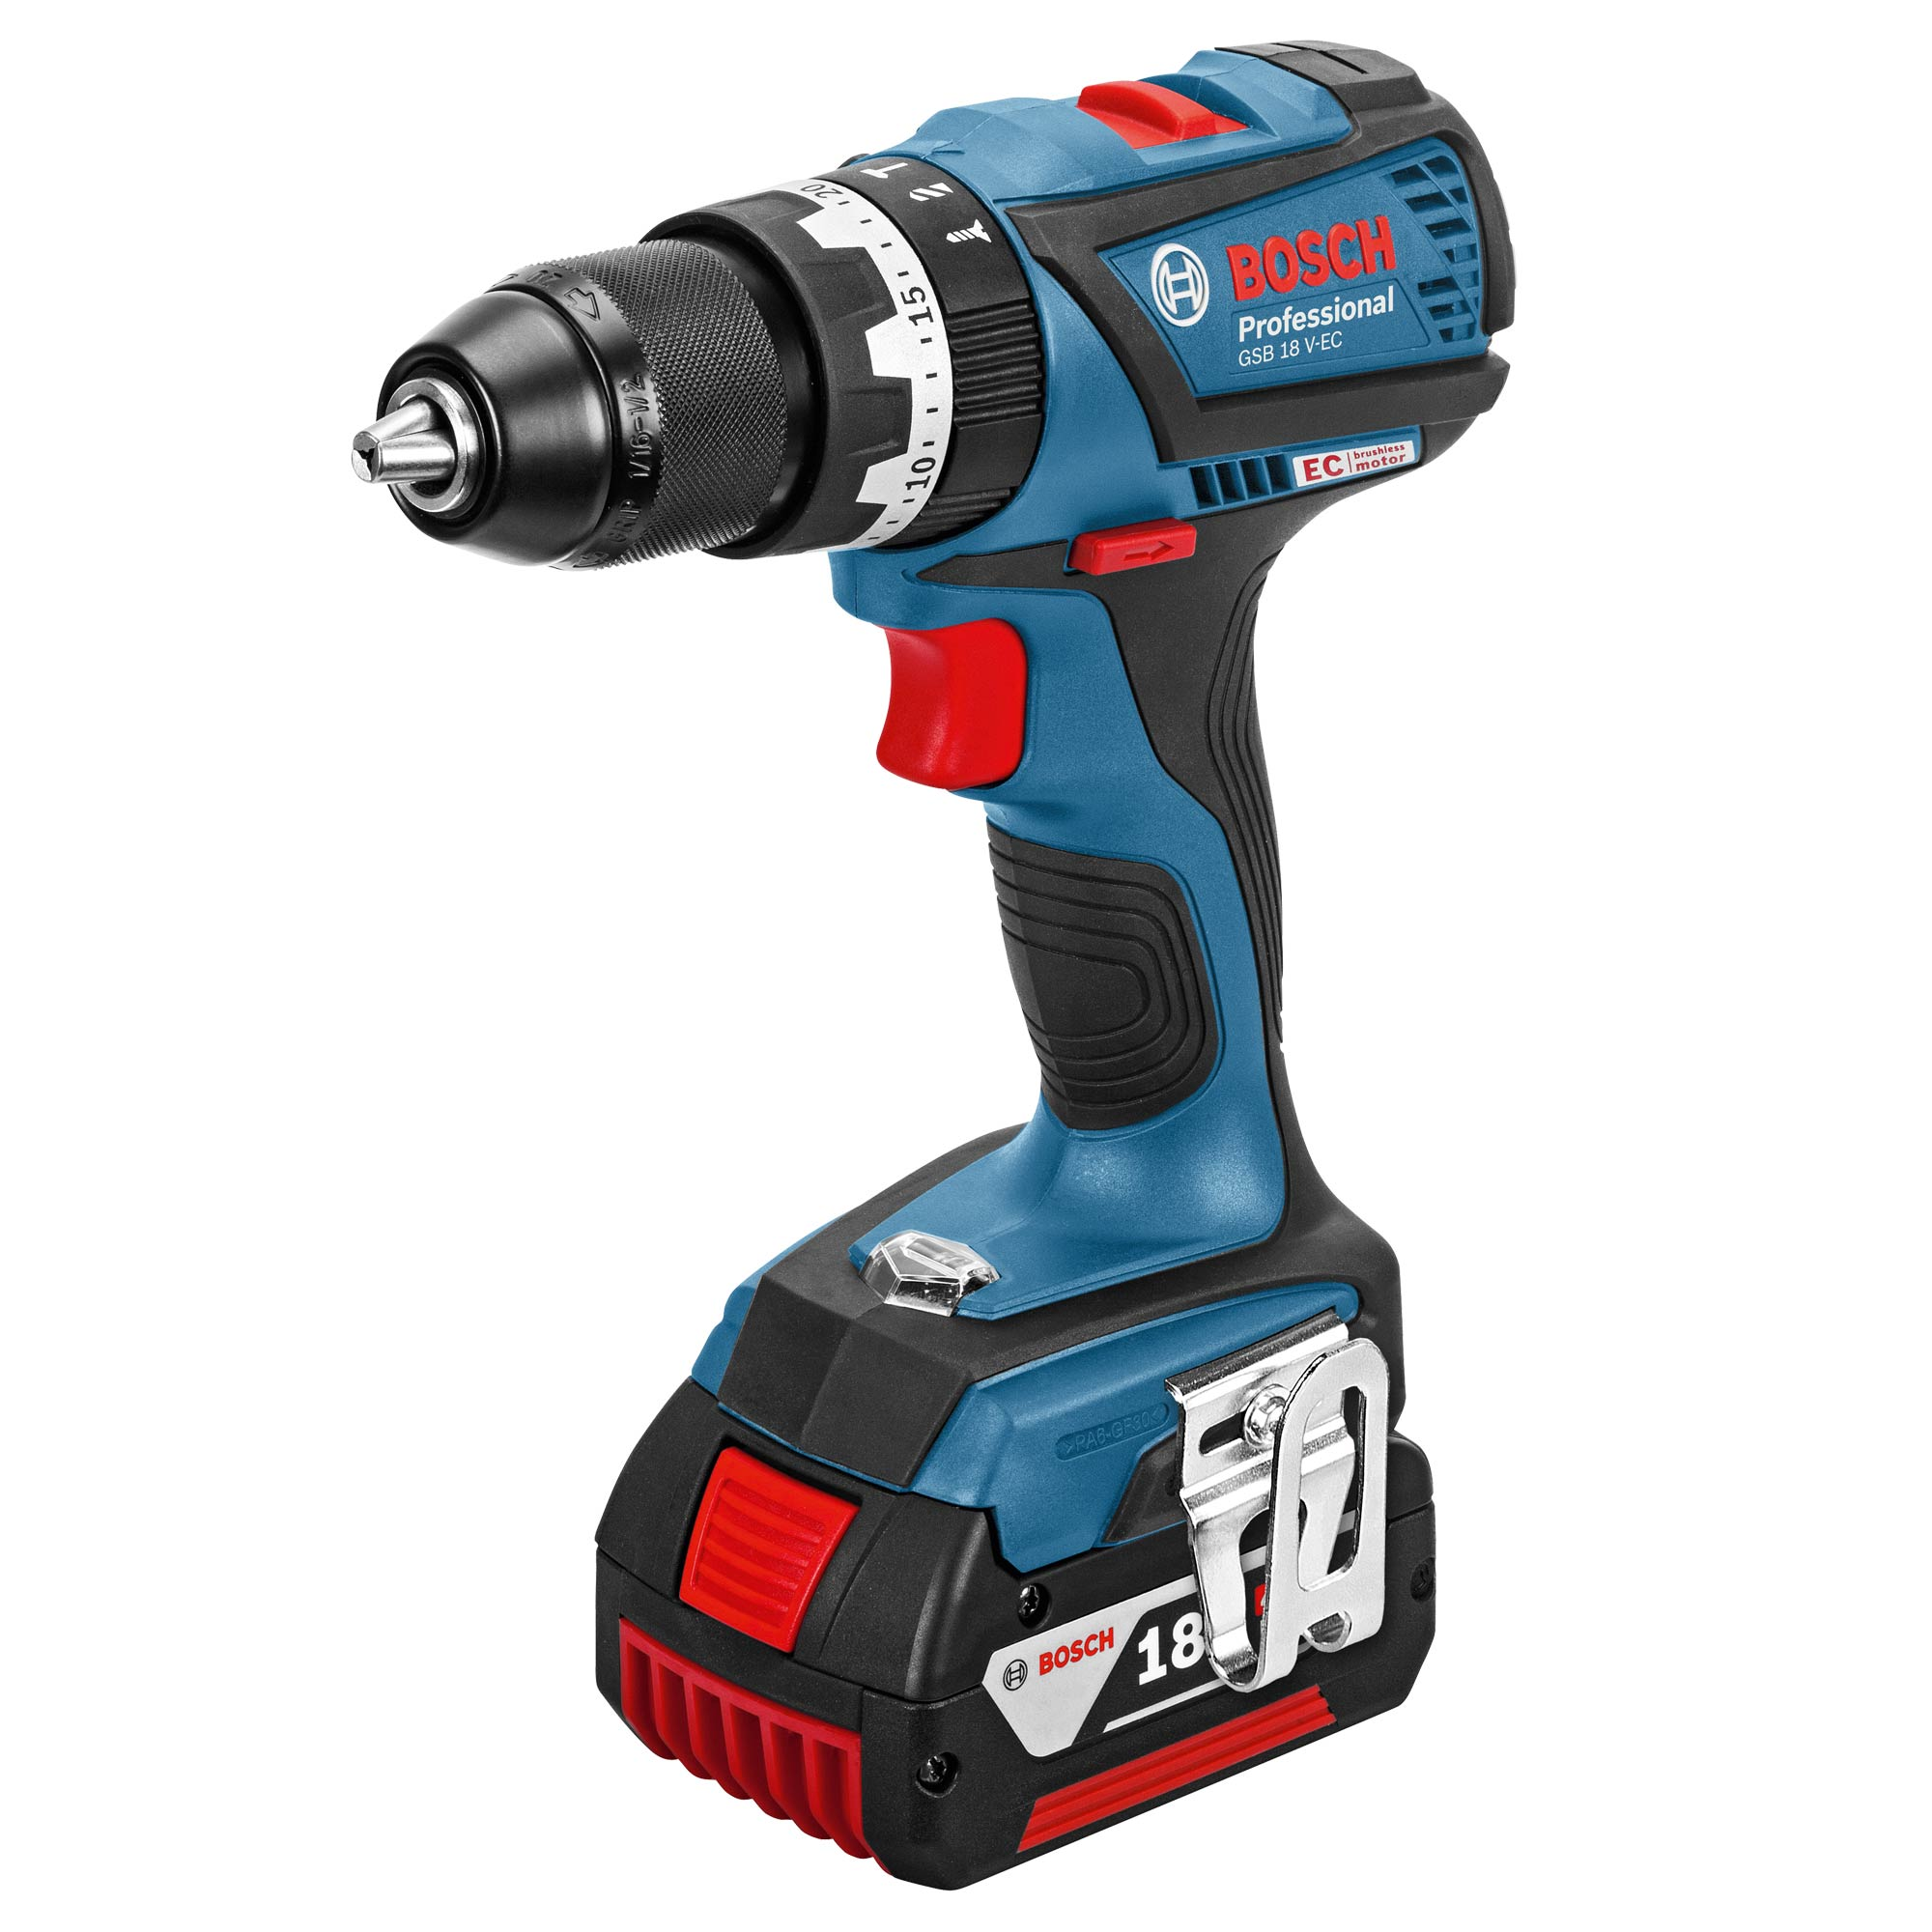 bosch gsb 18 v ec 1 bosch 18v li ion brushless hammer drill driver. Black Bedroom Furniture Sets. Home Design Ideas